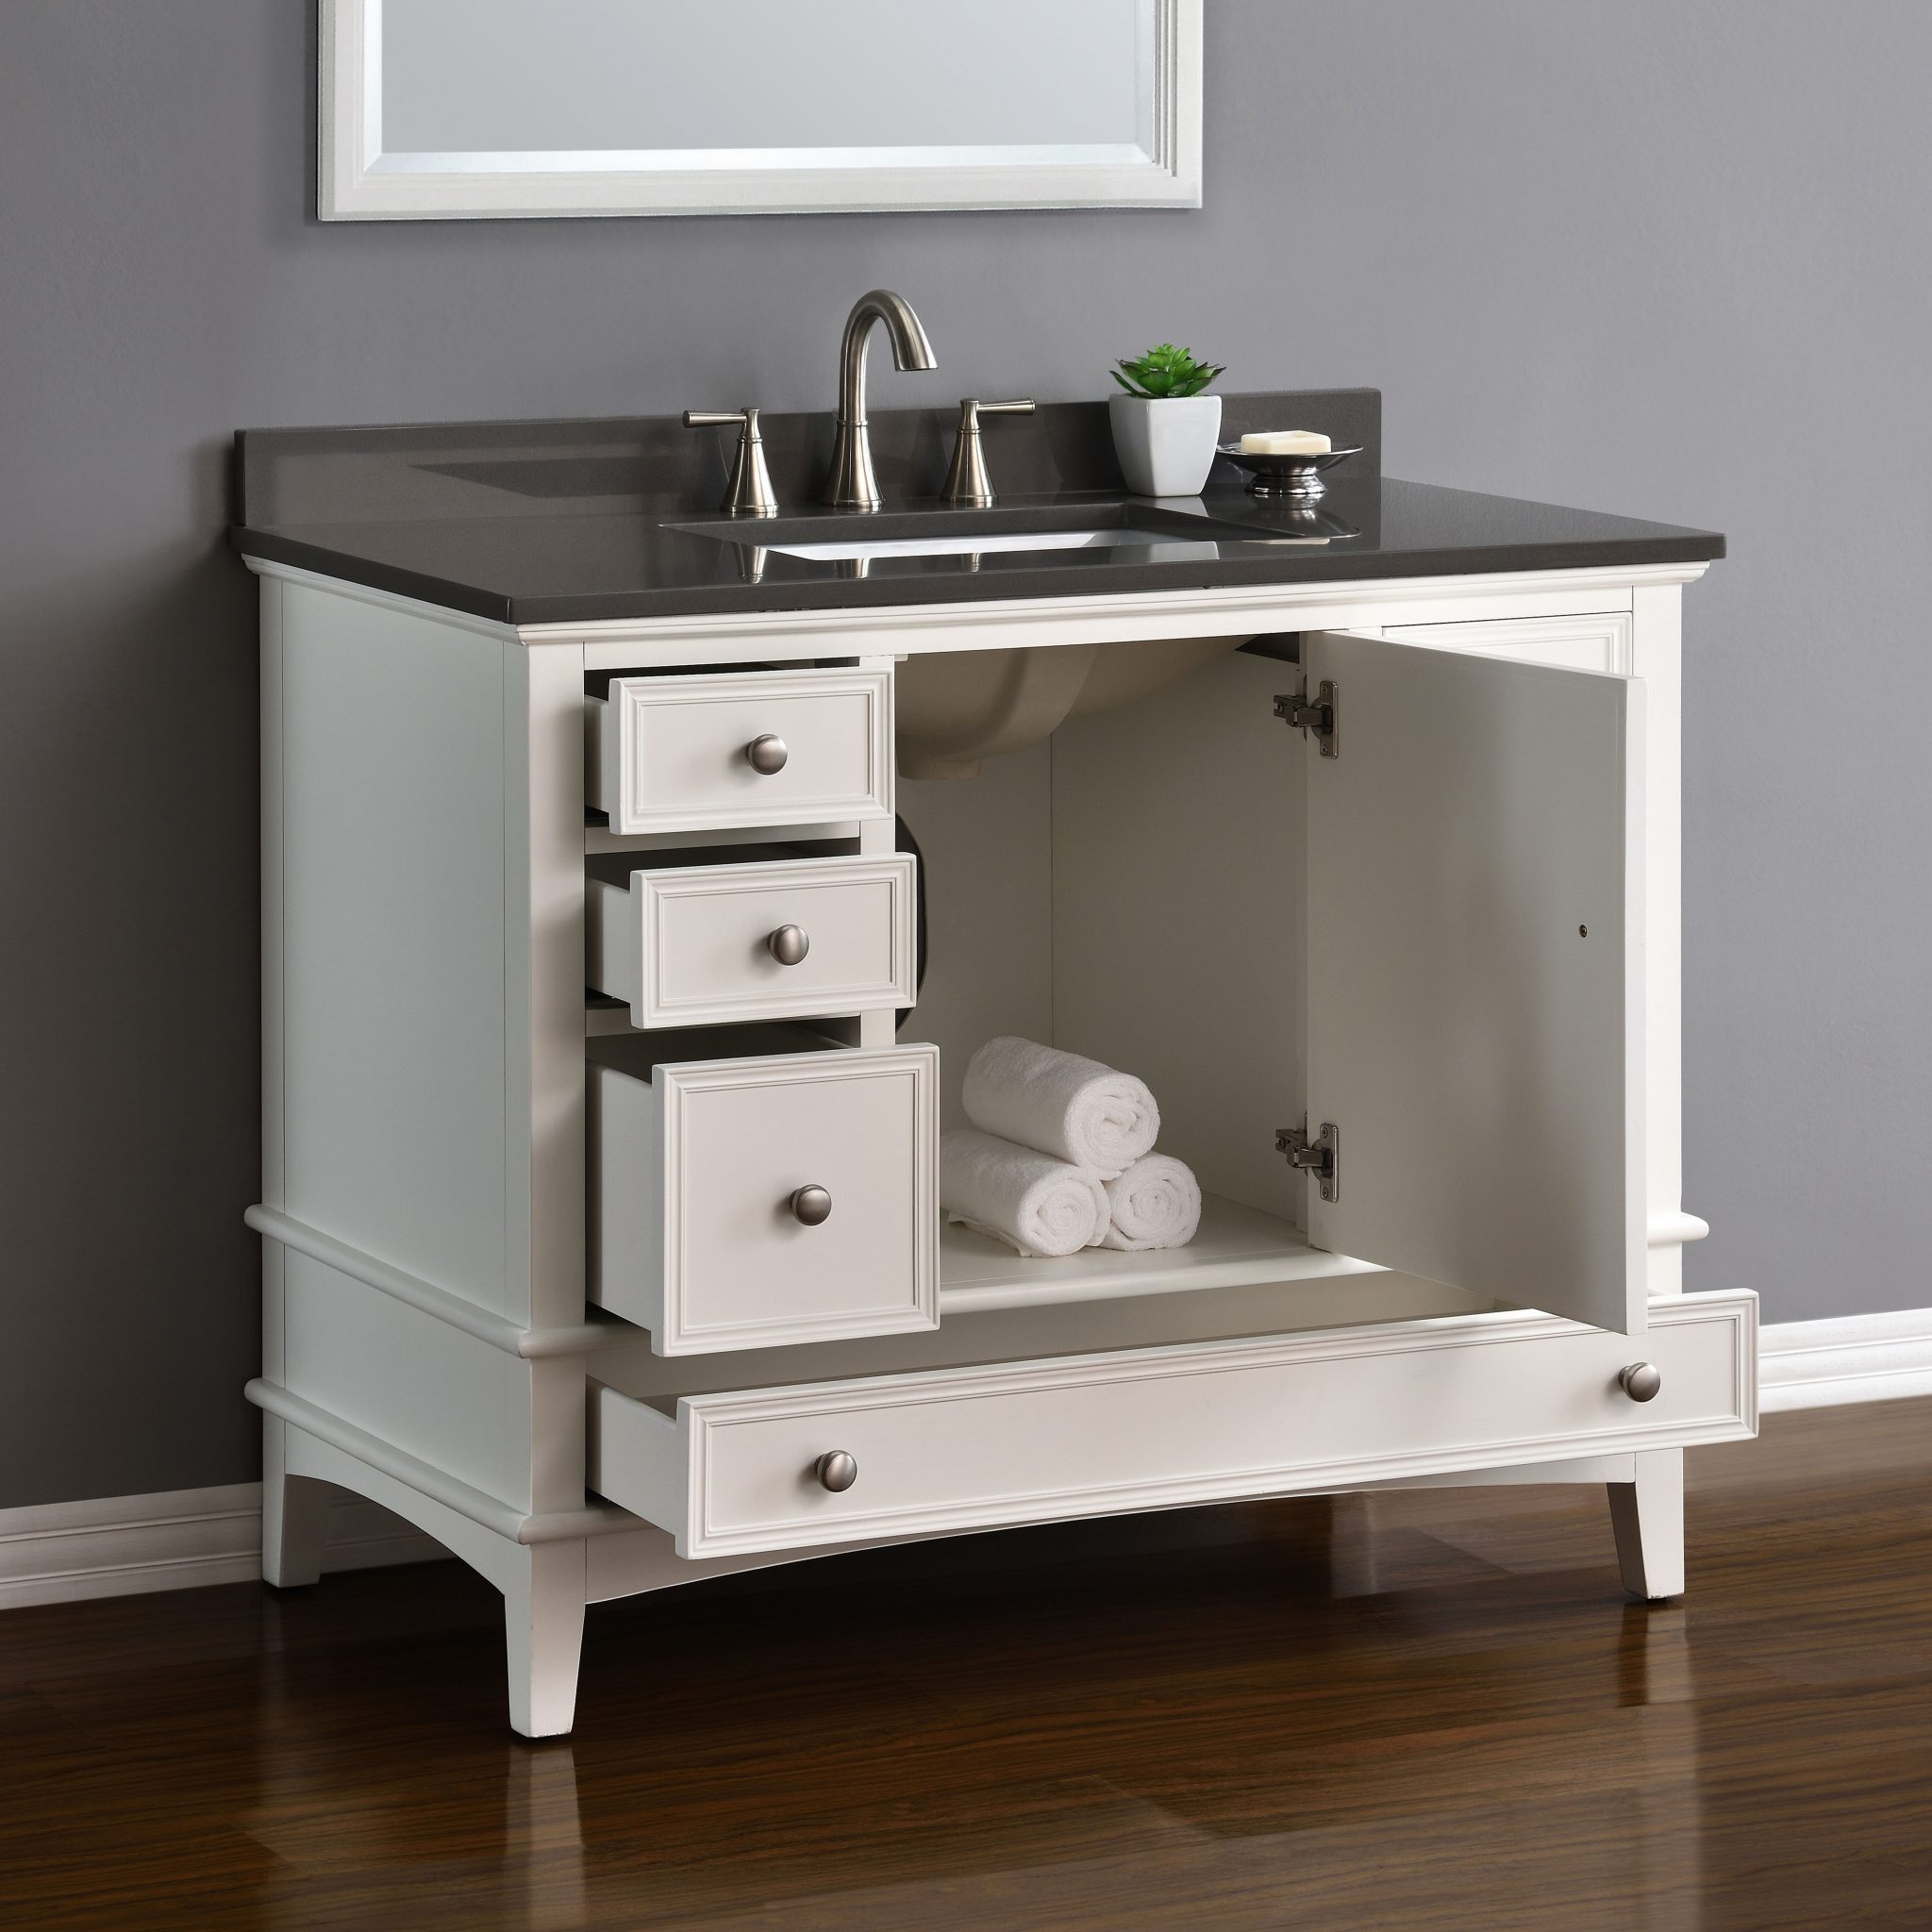 Enchanting 25 42 Single Sink Bathroom Vanity Decorating Inspiration Of Arielseacliff Nantucket